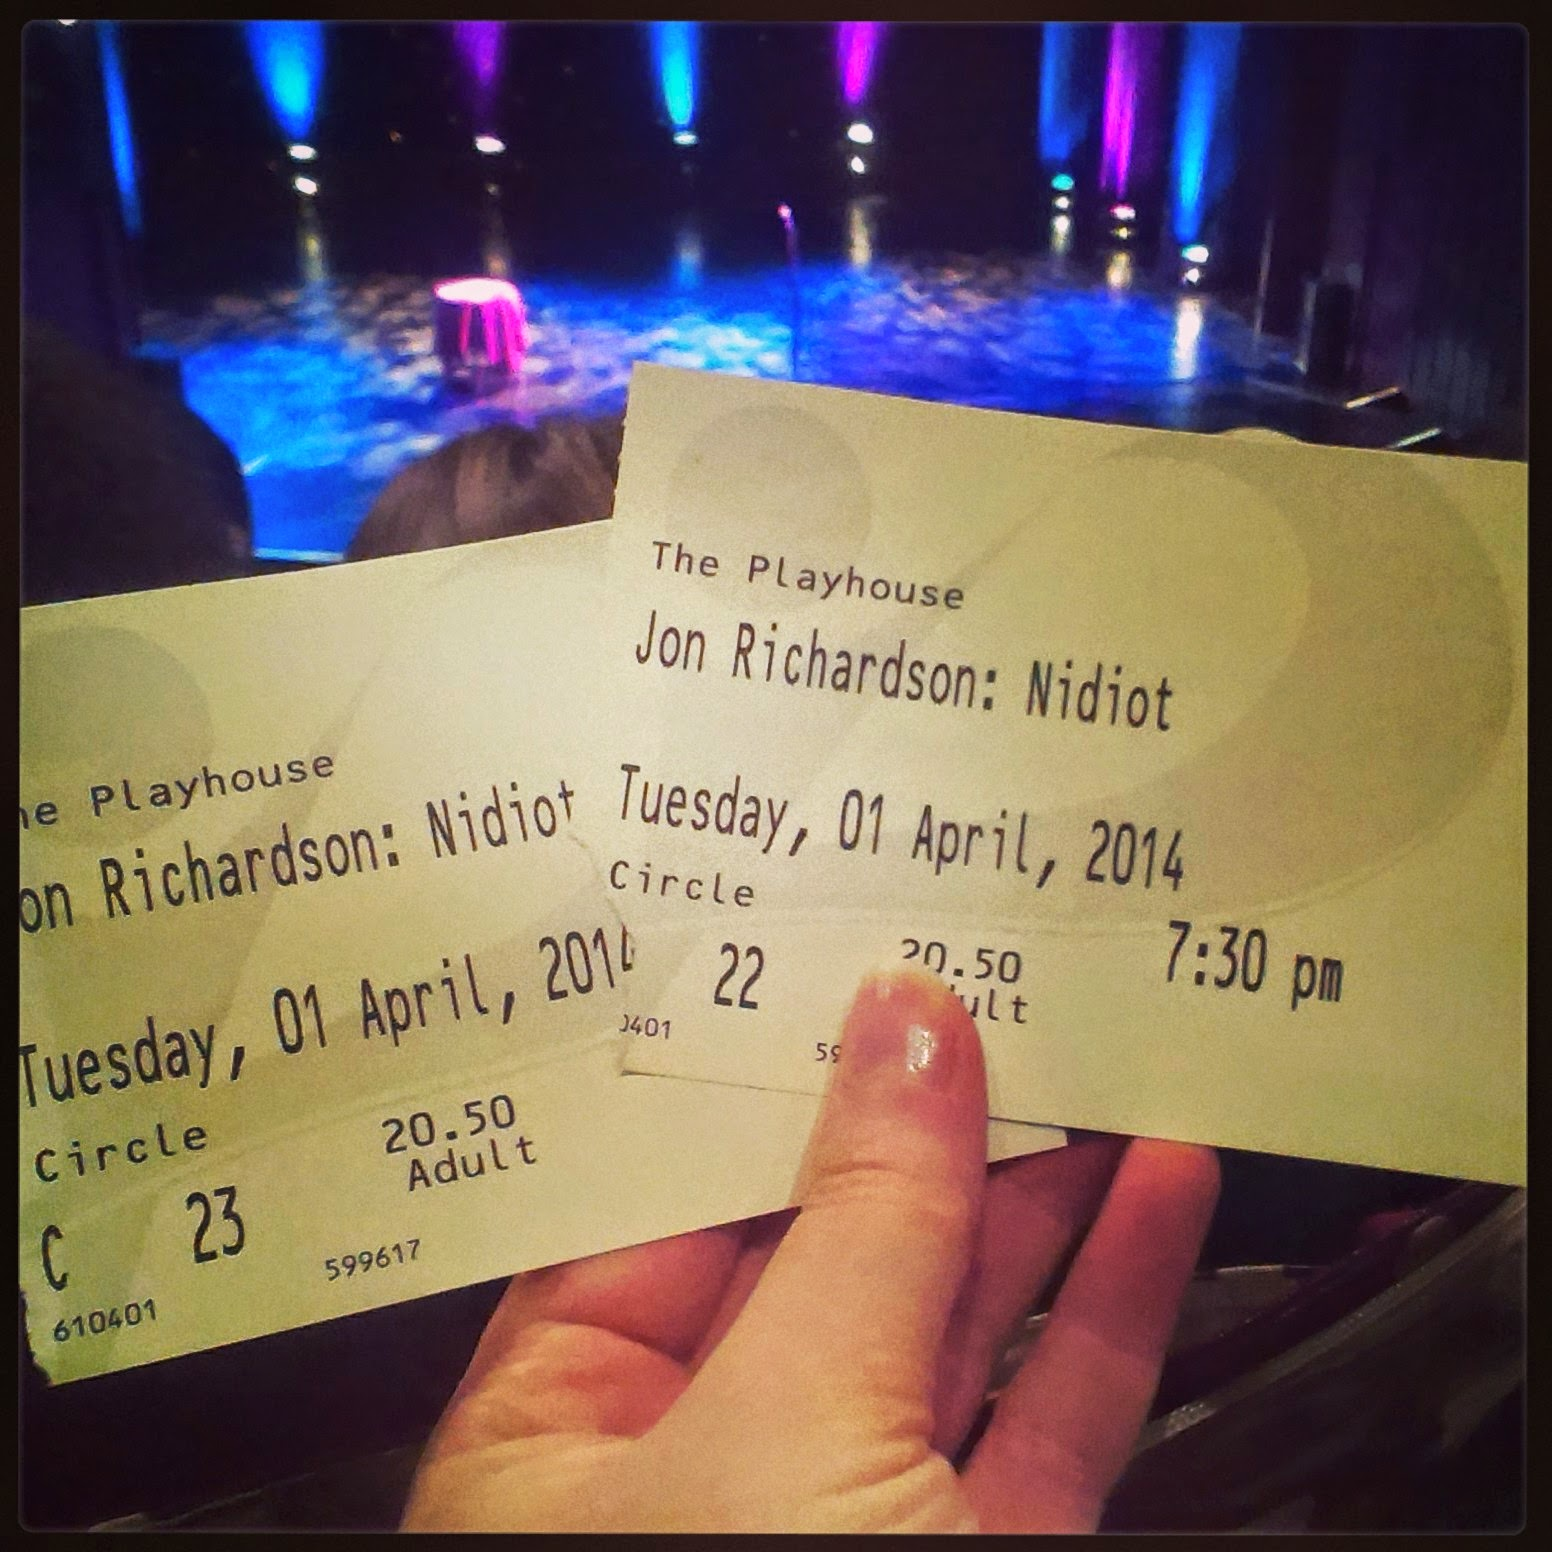 Tickets for Jon Richardson at Weston Super Mare Playhouse